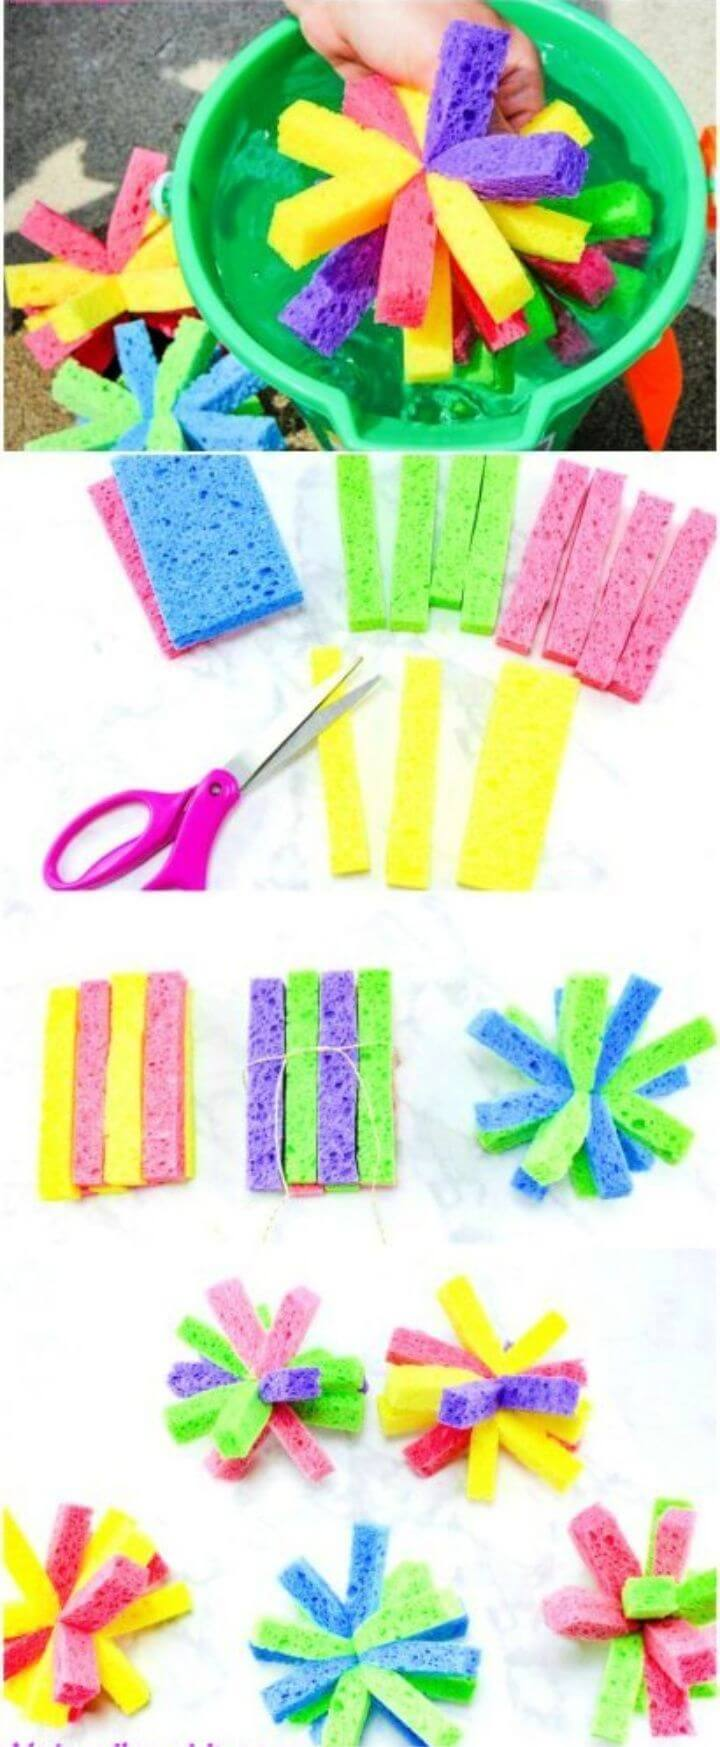 How to Make Super Soaker Sponge Balls Kids Will Love